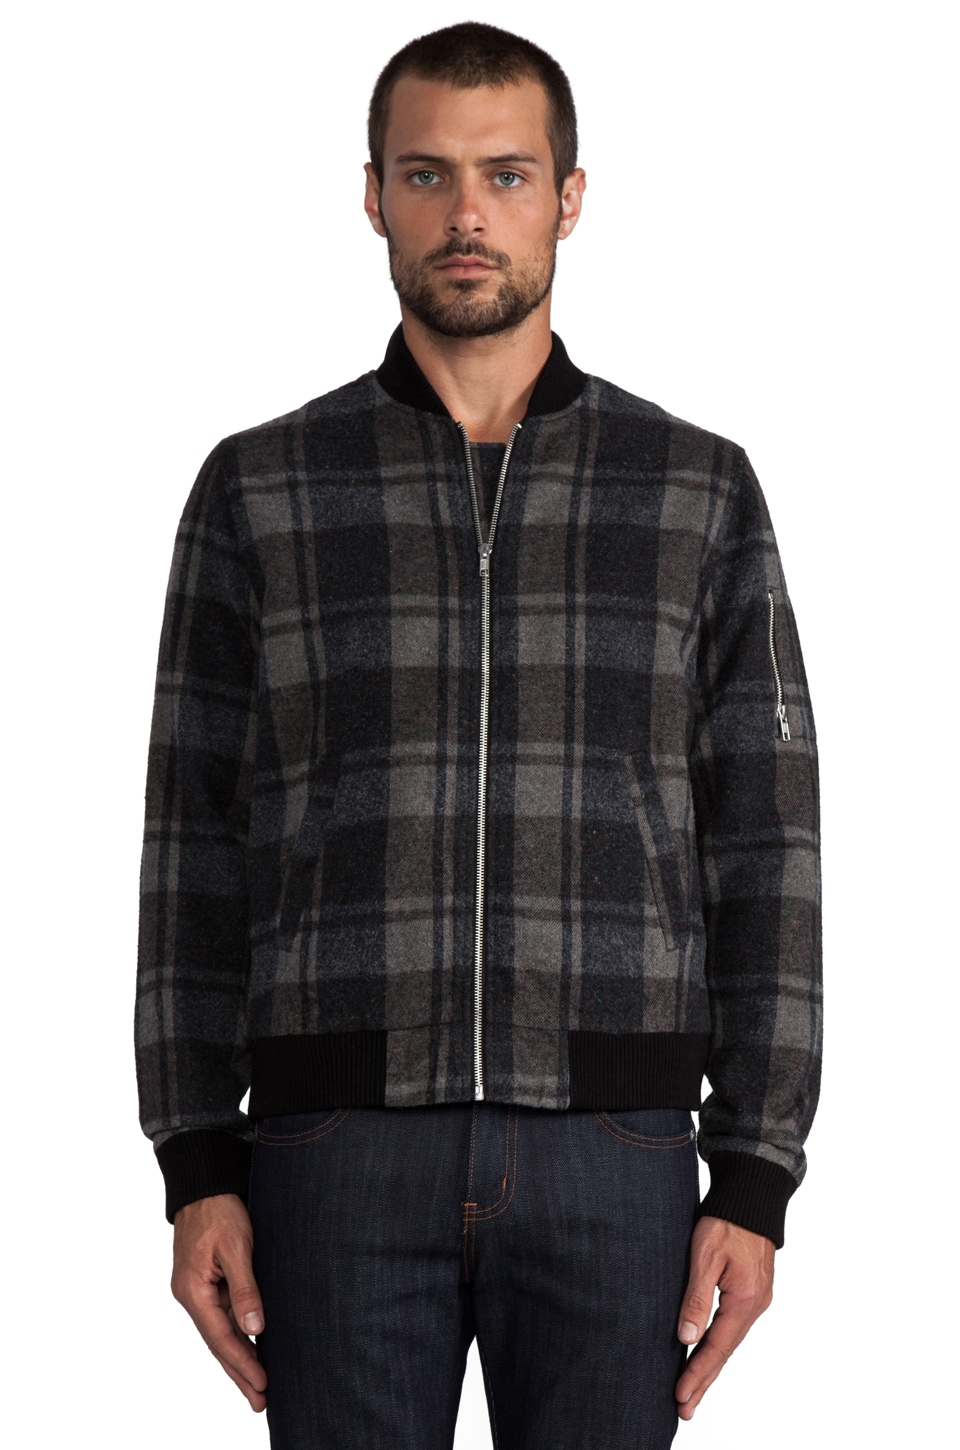 AG Adriano Goldschmied Blouson Bomber en Charcoal/Brown Plaid